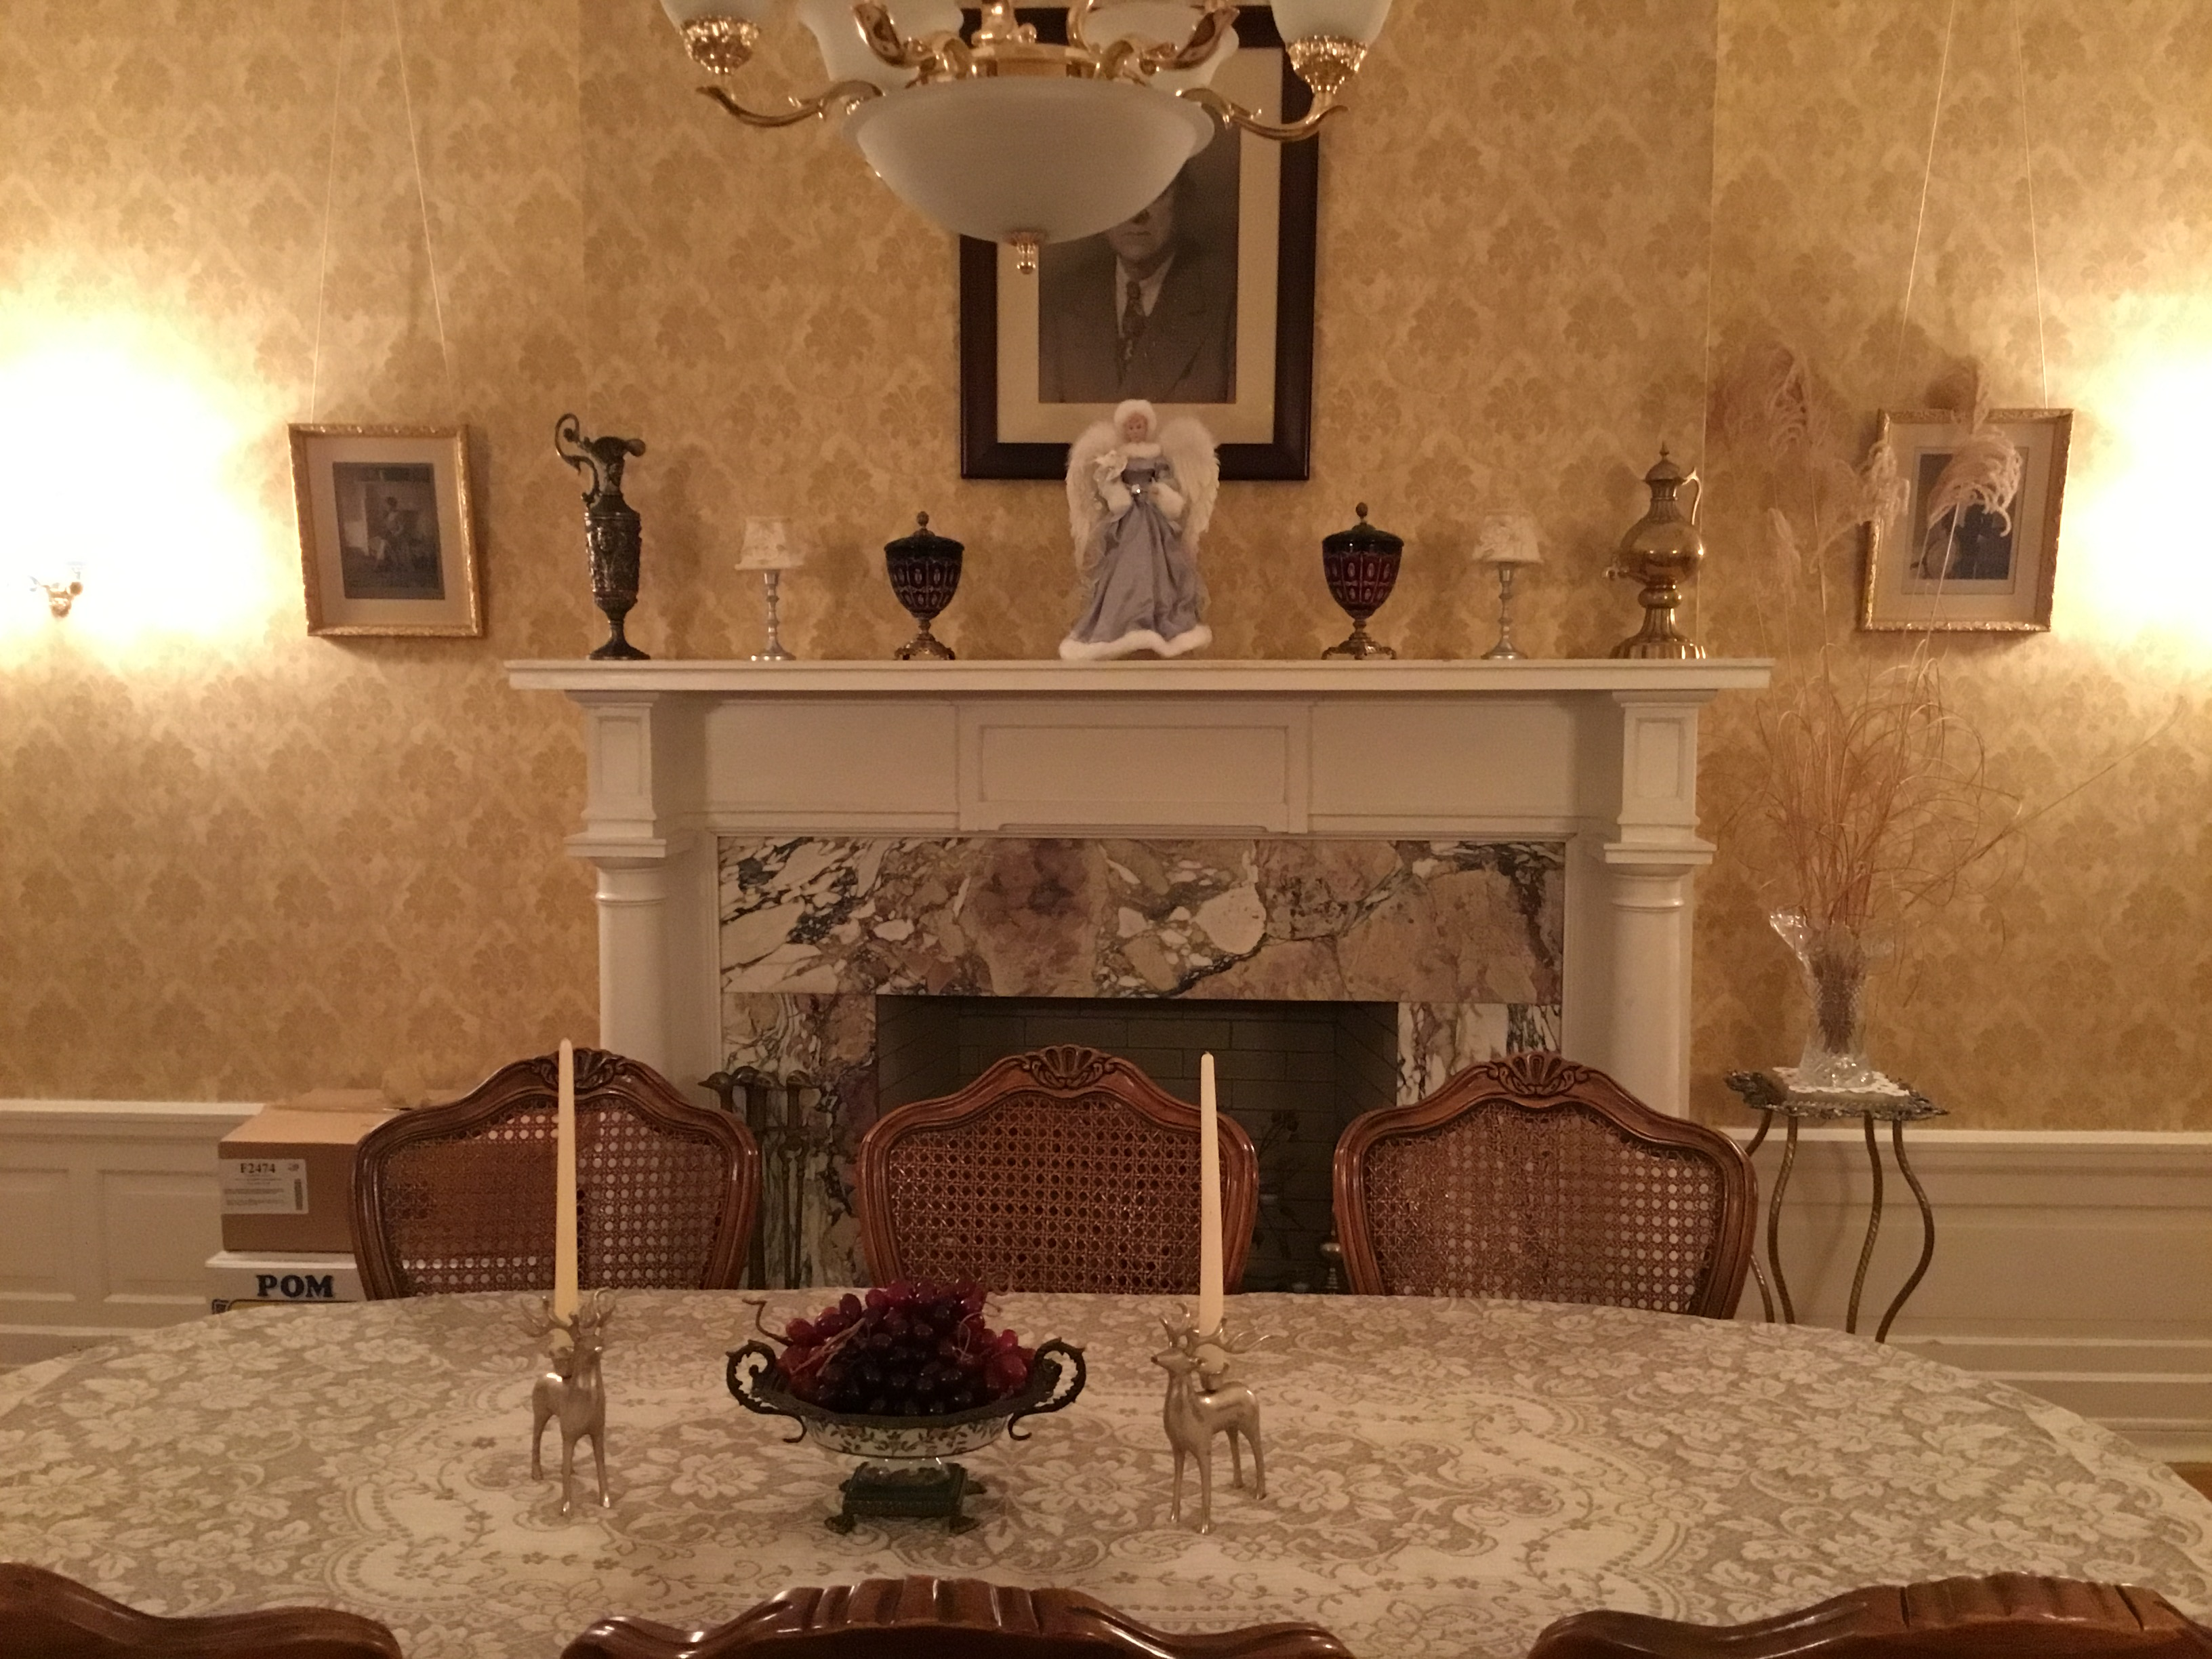 The private dinning room with Christmas decorations